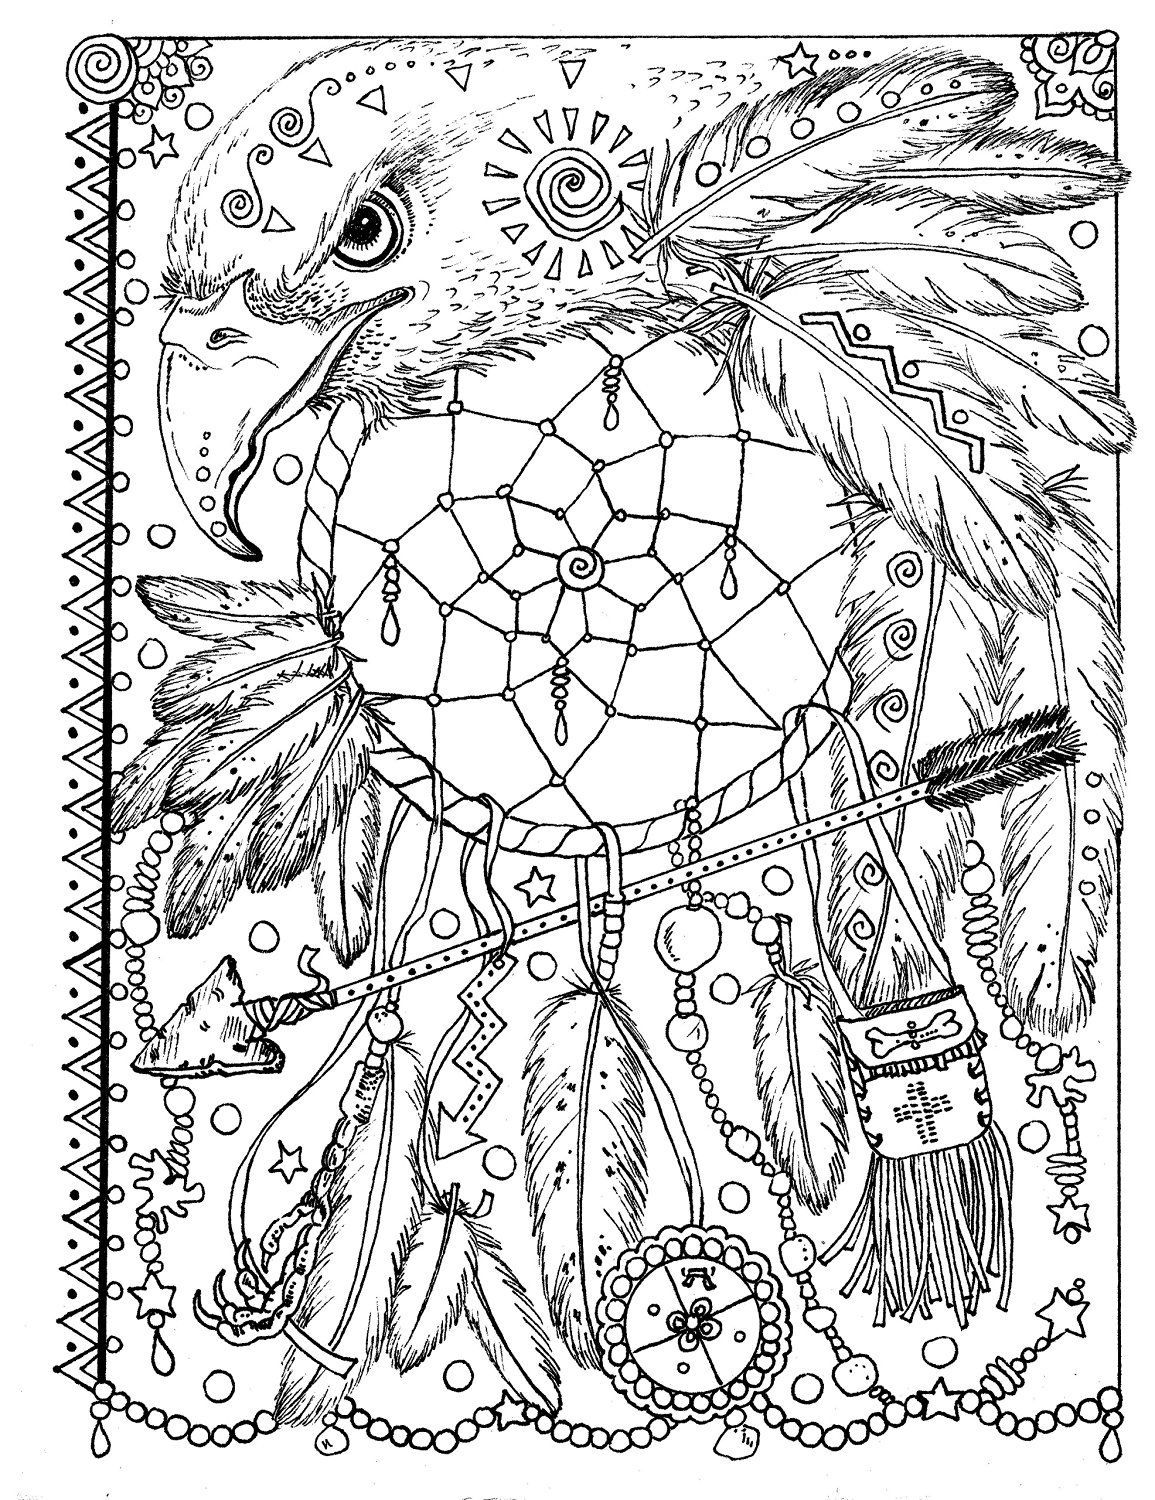 Collection Of Coloring Pages Spirit Animals Download Them And Try To Solve Mandalas Animales Libros Para Colorear Libros Para Colorear Adultos